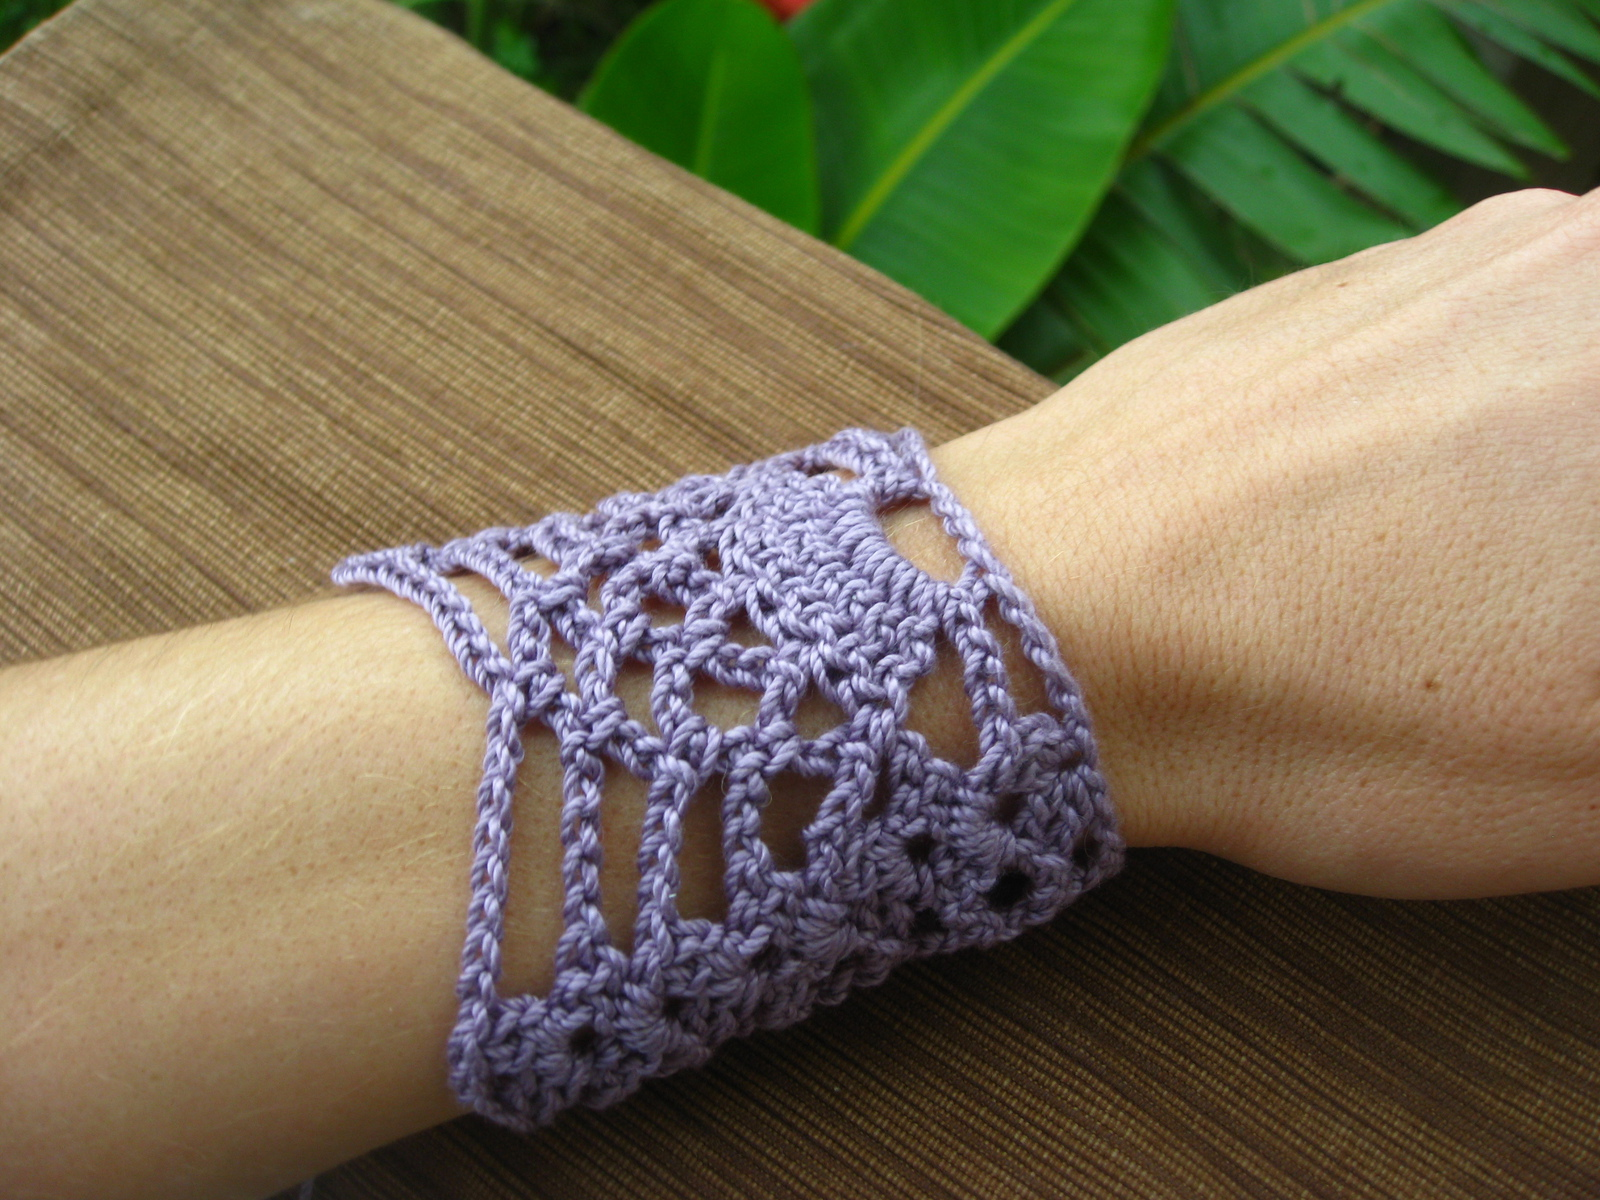 Crochet lace bracelet on a woman's wrist